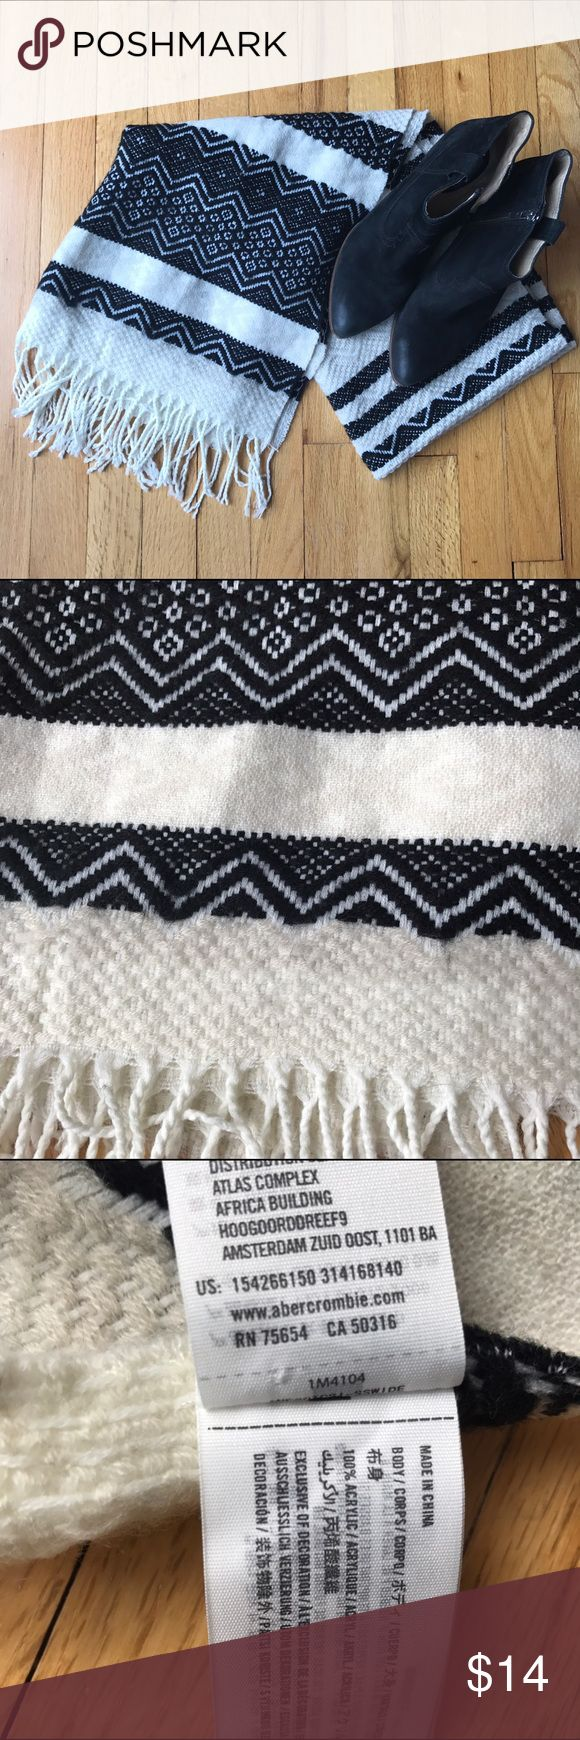 "Abercrombie tribal print blanket scarf fringe Gorgeous A+F scarf with black and cream tribal print and fringe. Excellent used condition. Measures 21""x60"". Abercrombie & Fitch Accessories Scarves & Wraps"